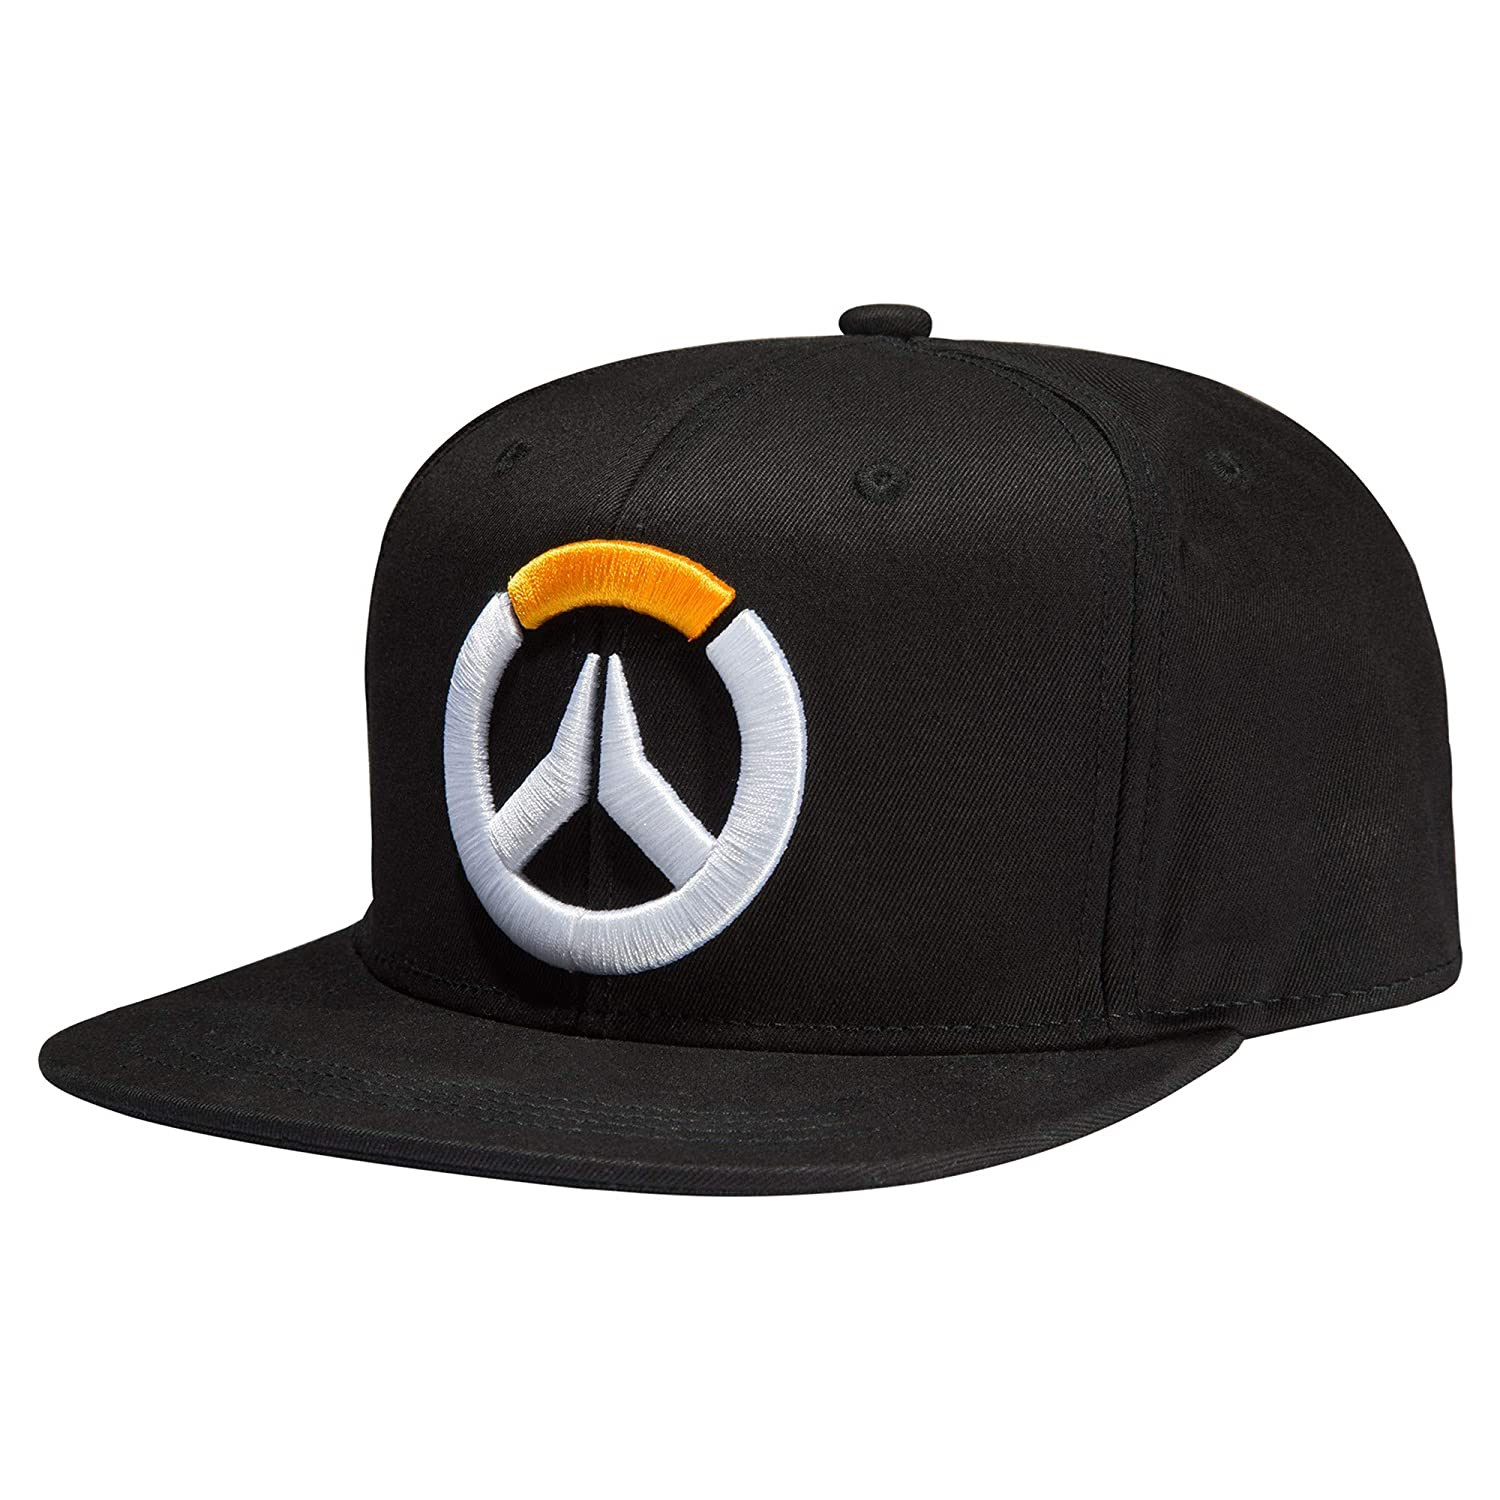 Amazon.com  JINX Overwatch Frenetic Snapback Baseball Hat (Black ... 7b052e938eb